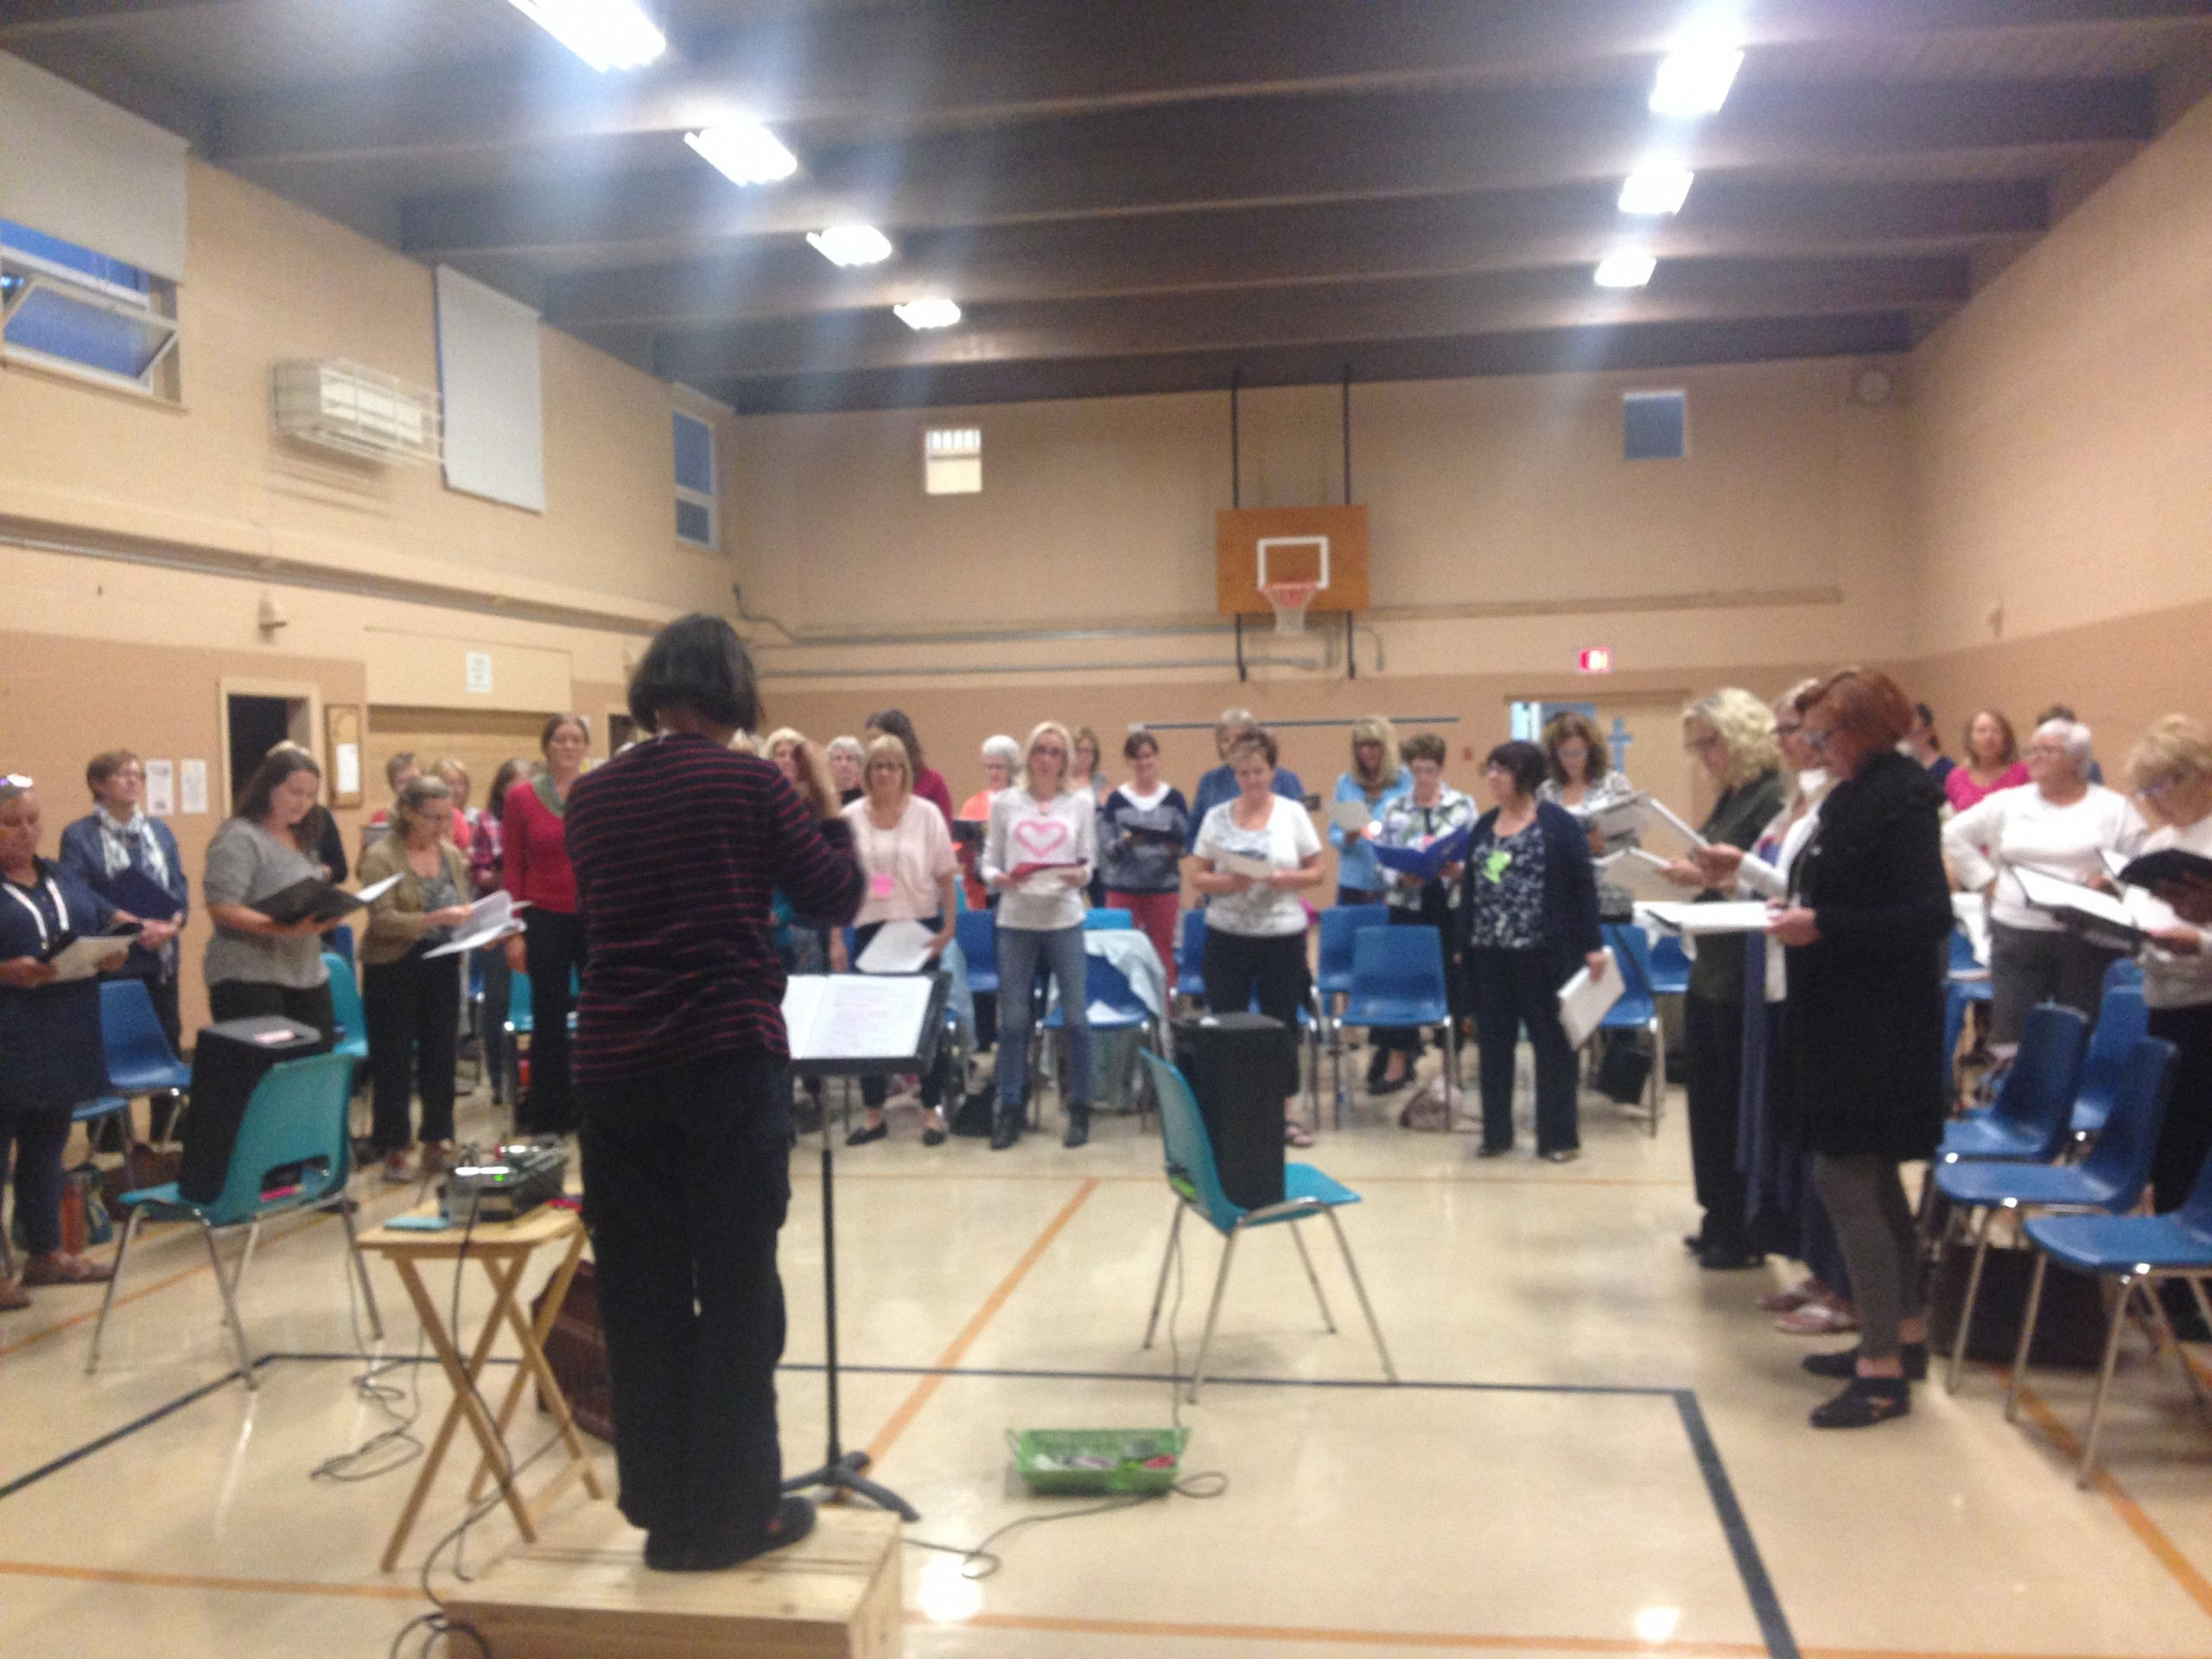 Shout Sisters! Ontario's largest growing choir